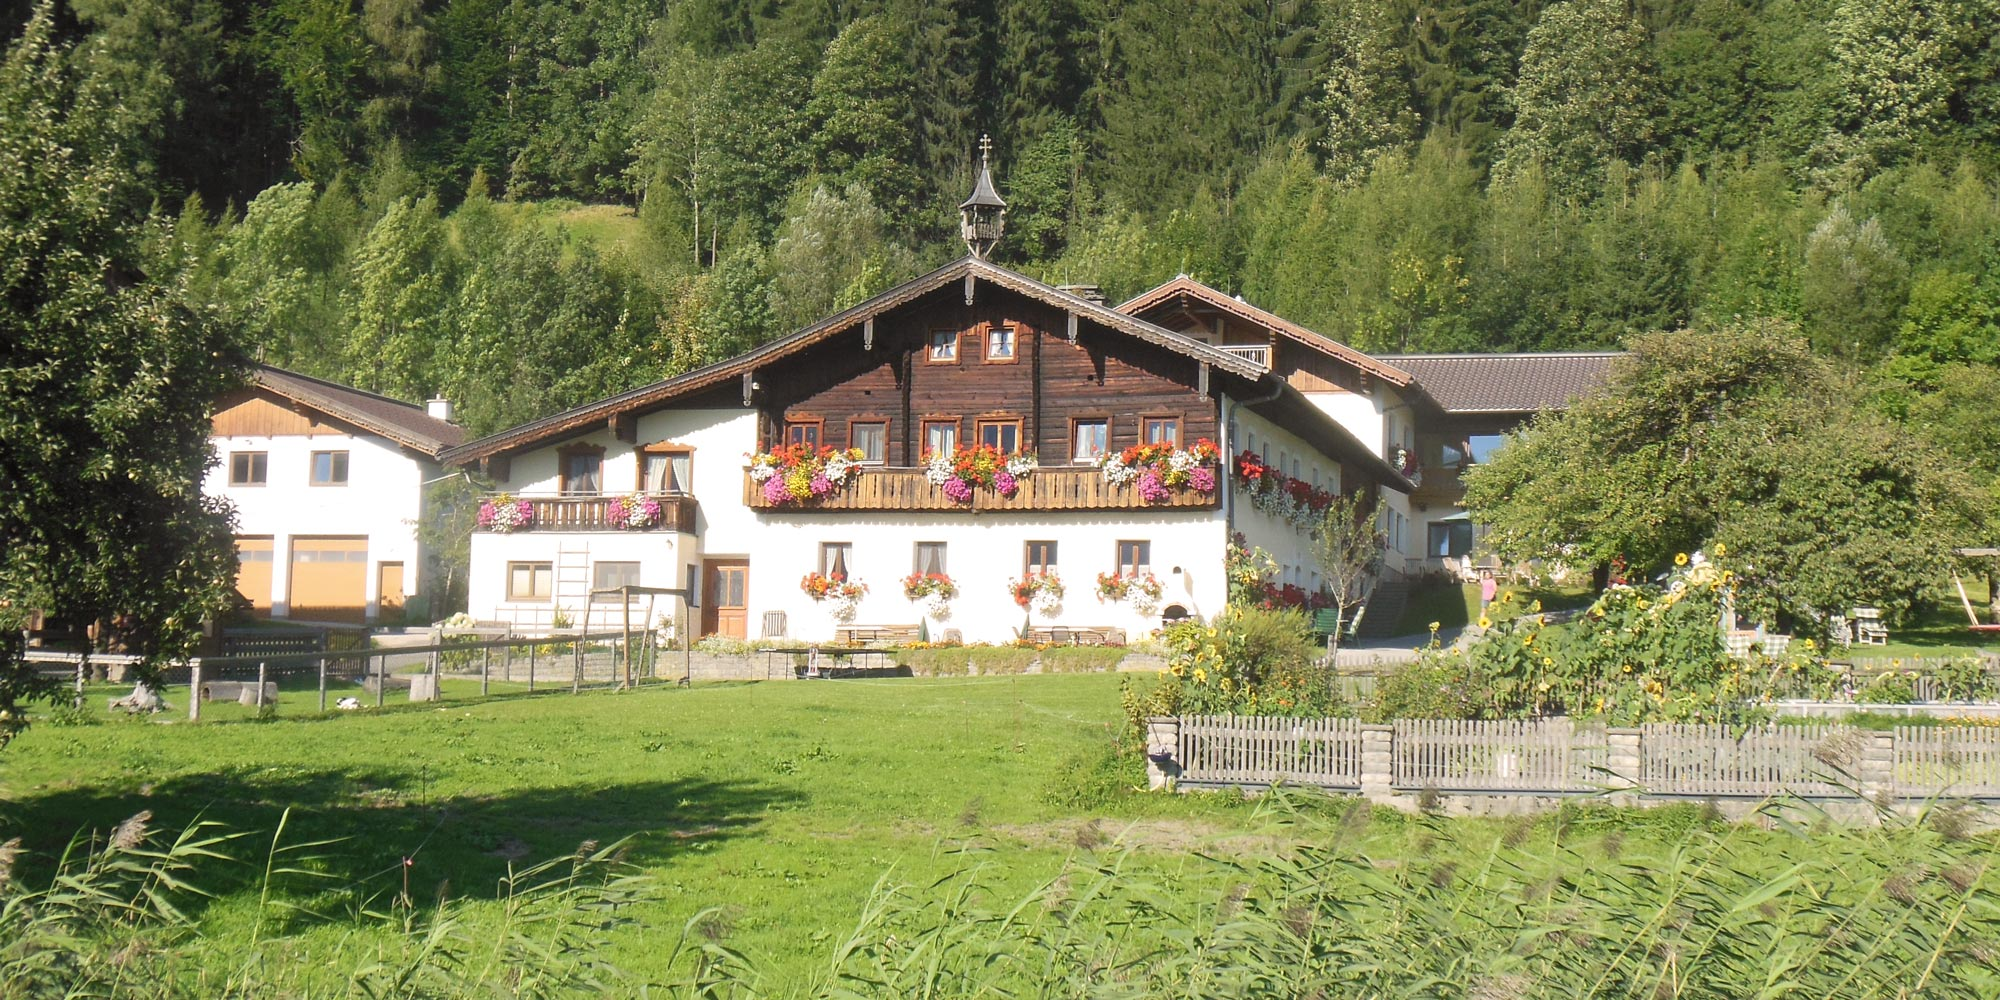 Sinnhubbauer farm in Altenmarkt